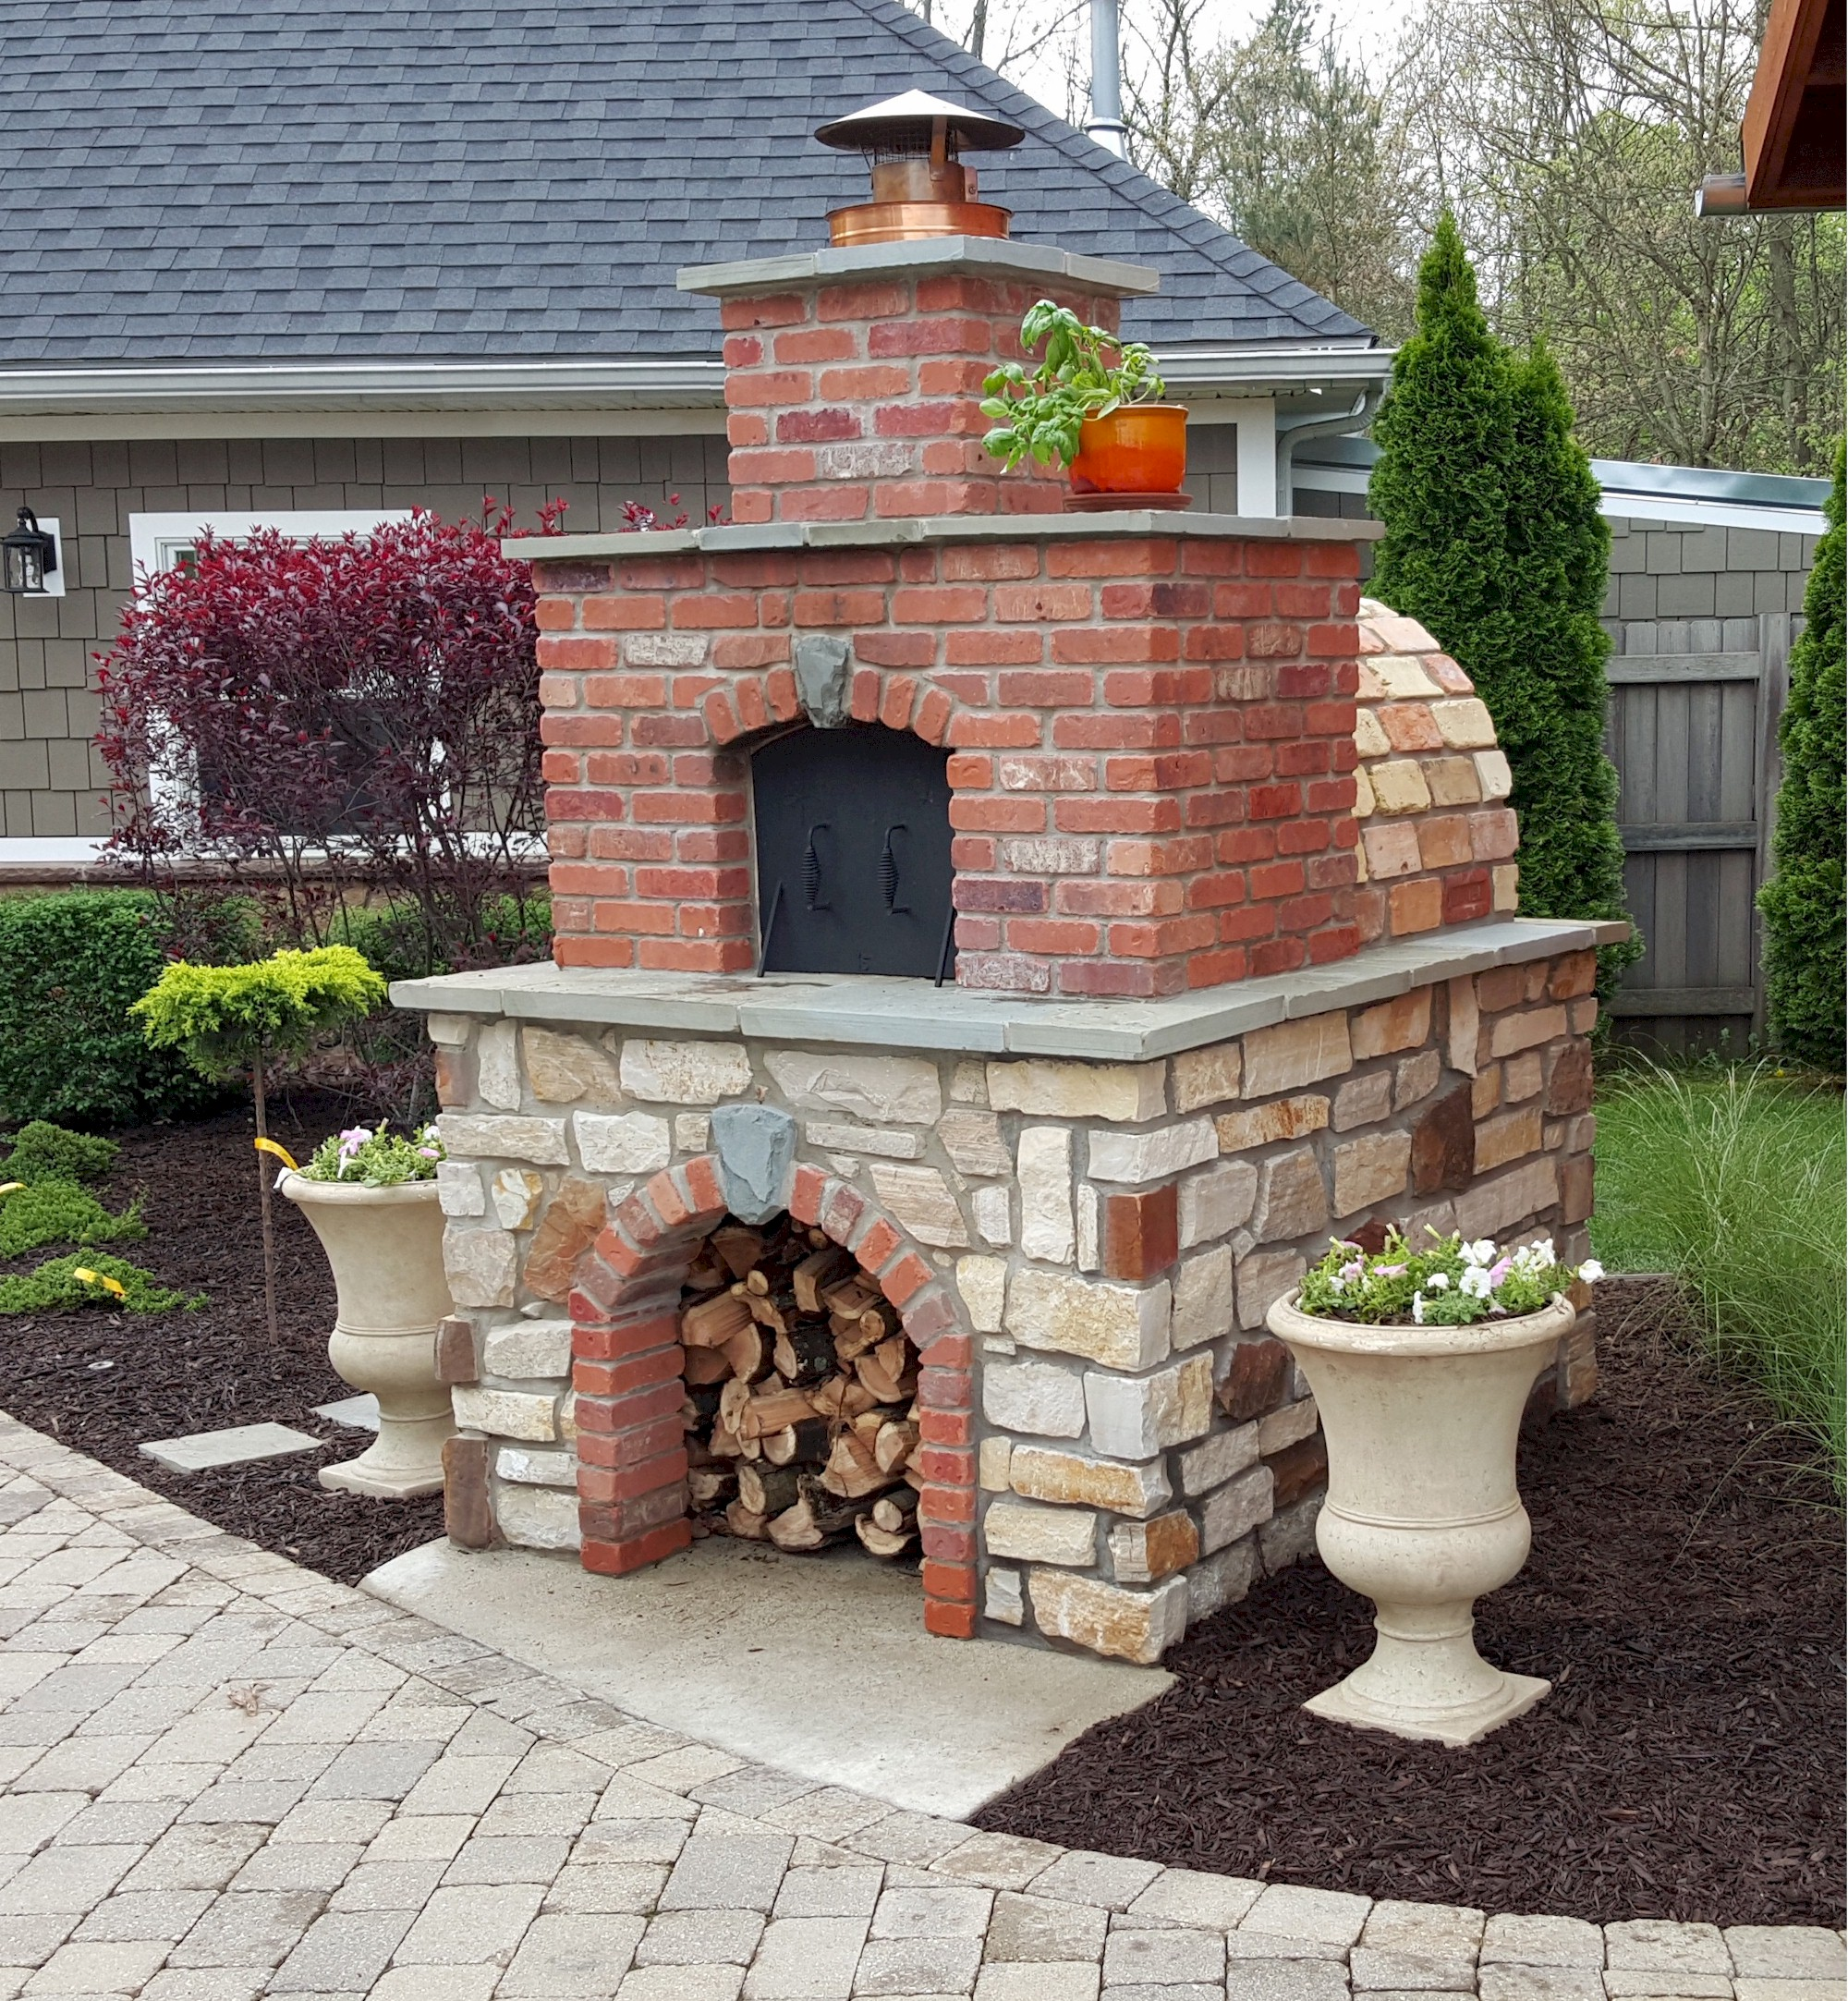 Backyard Brick Pizza Oven diy wood-fired outdoor brick pizza ovens are not only easy to build